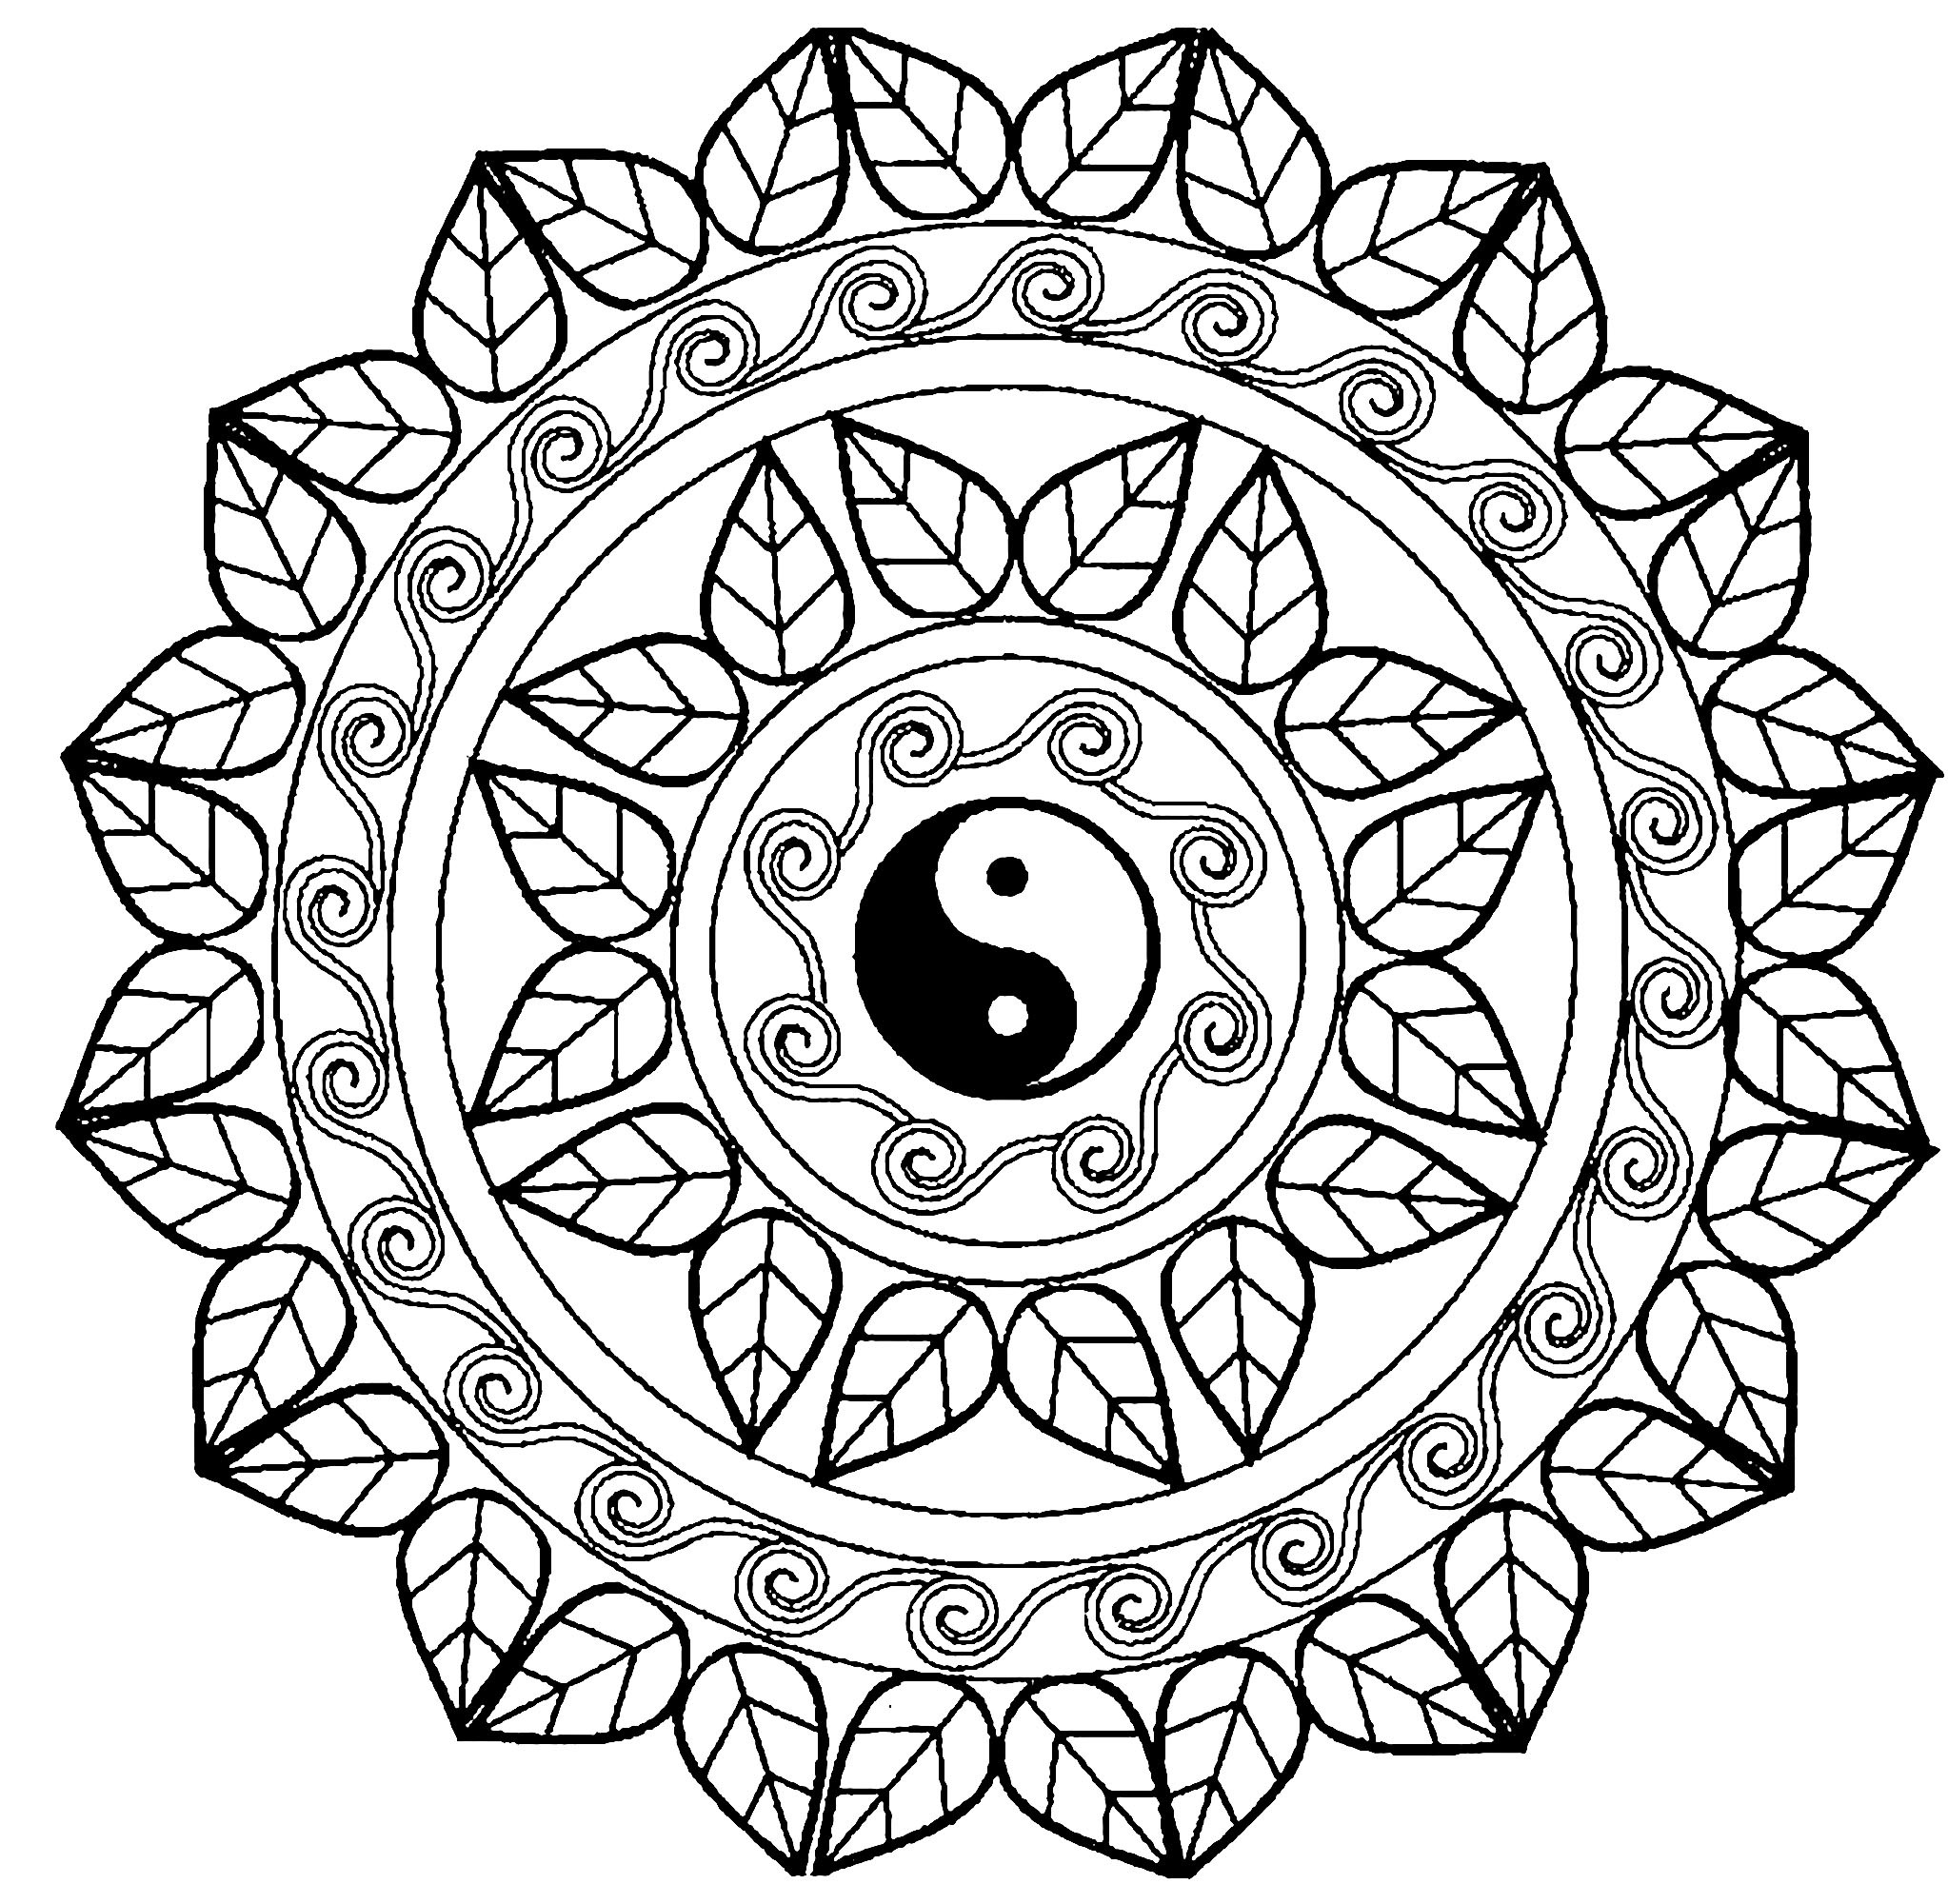 Mandala Art Coloring Pages  Mandala yin yang M&alas Adult Coloring Pages